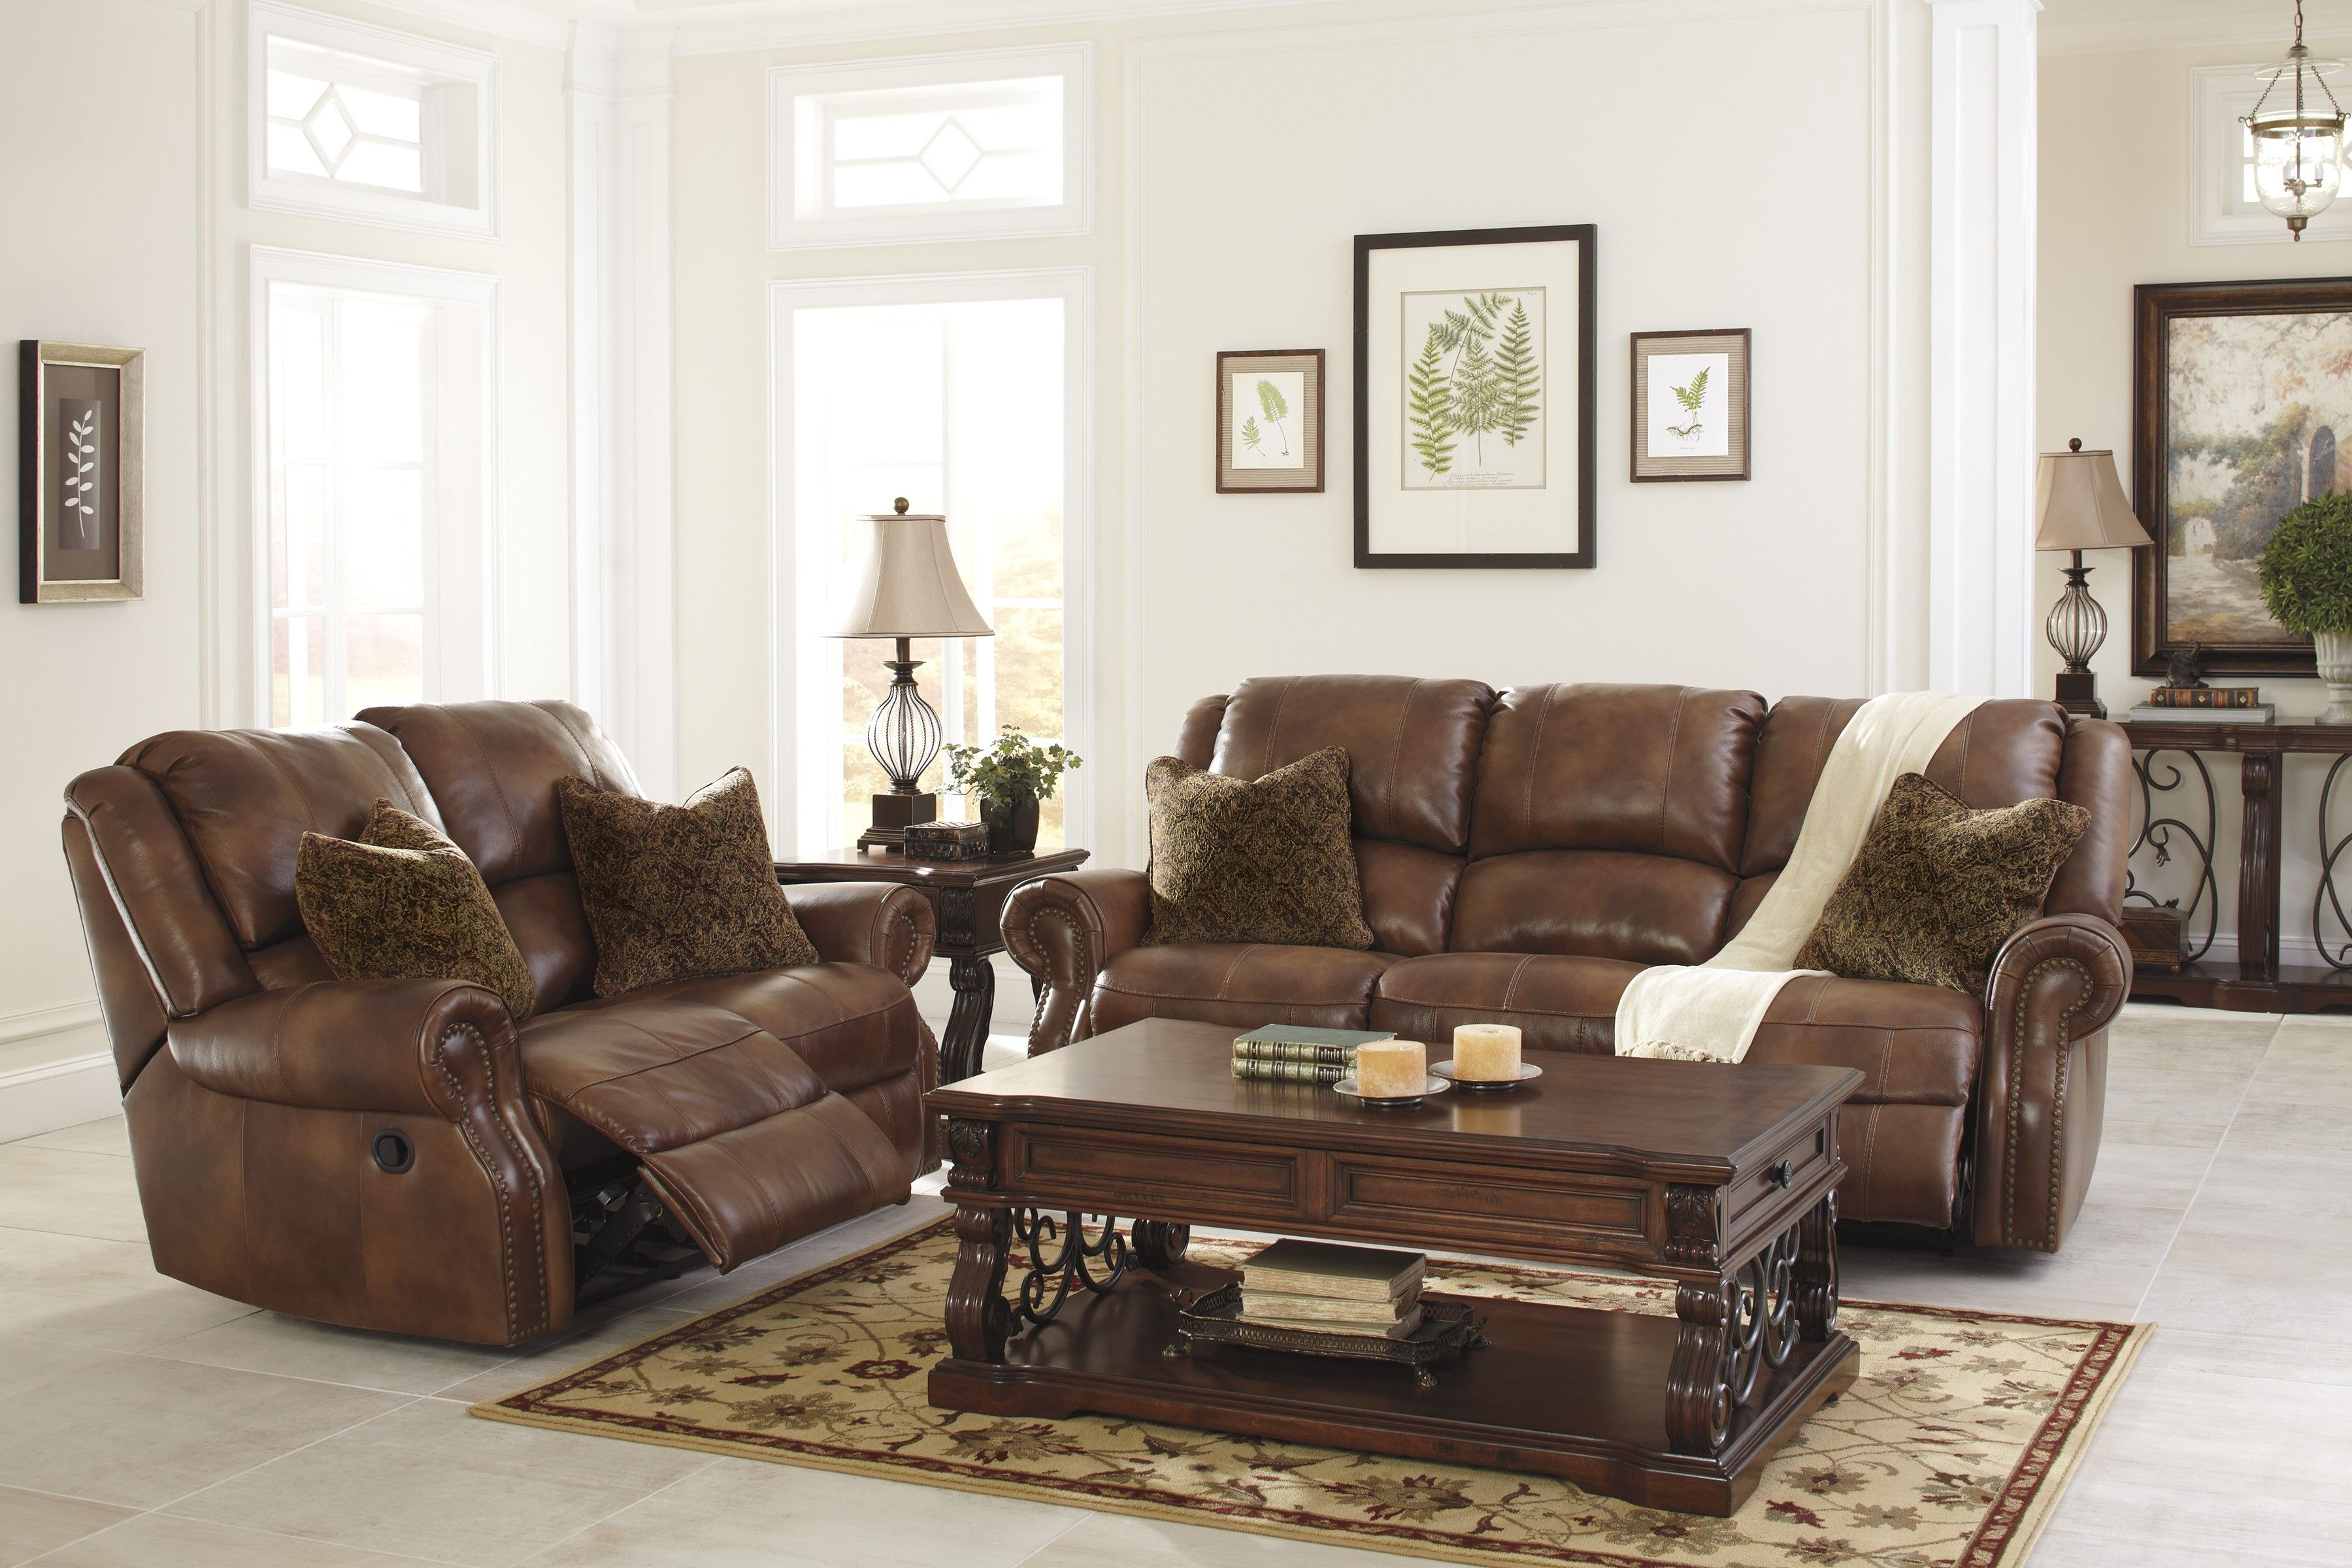 cool Living Room Sets Ashley Furniture Trend Living Room Sets